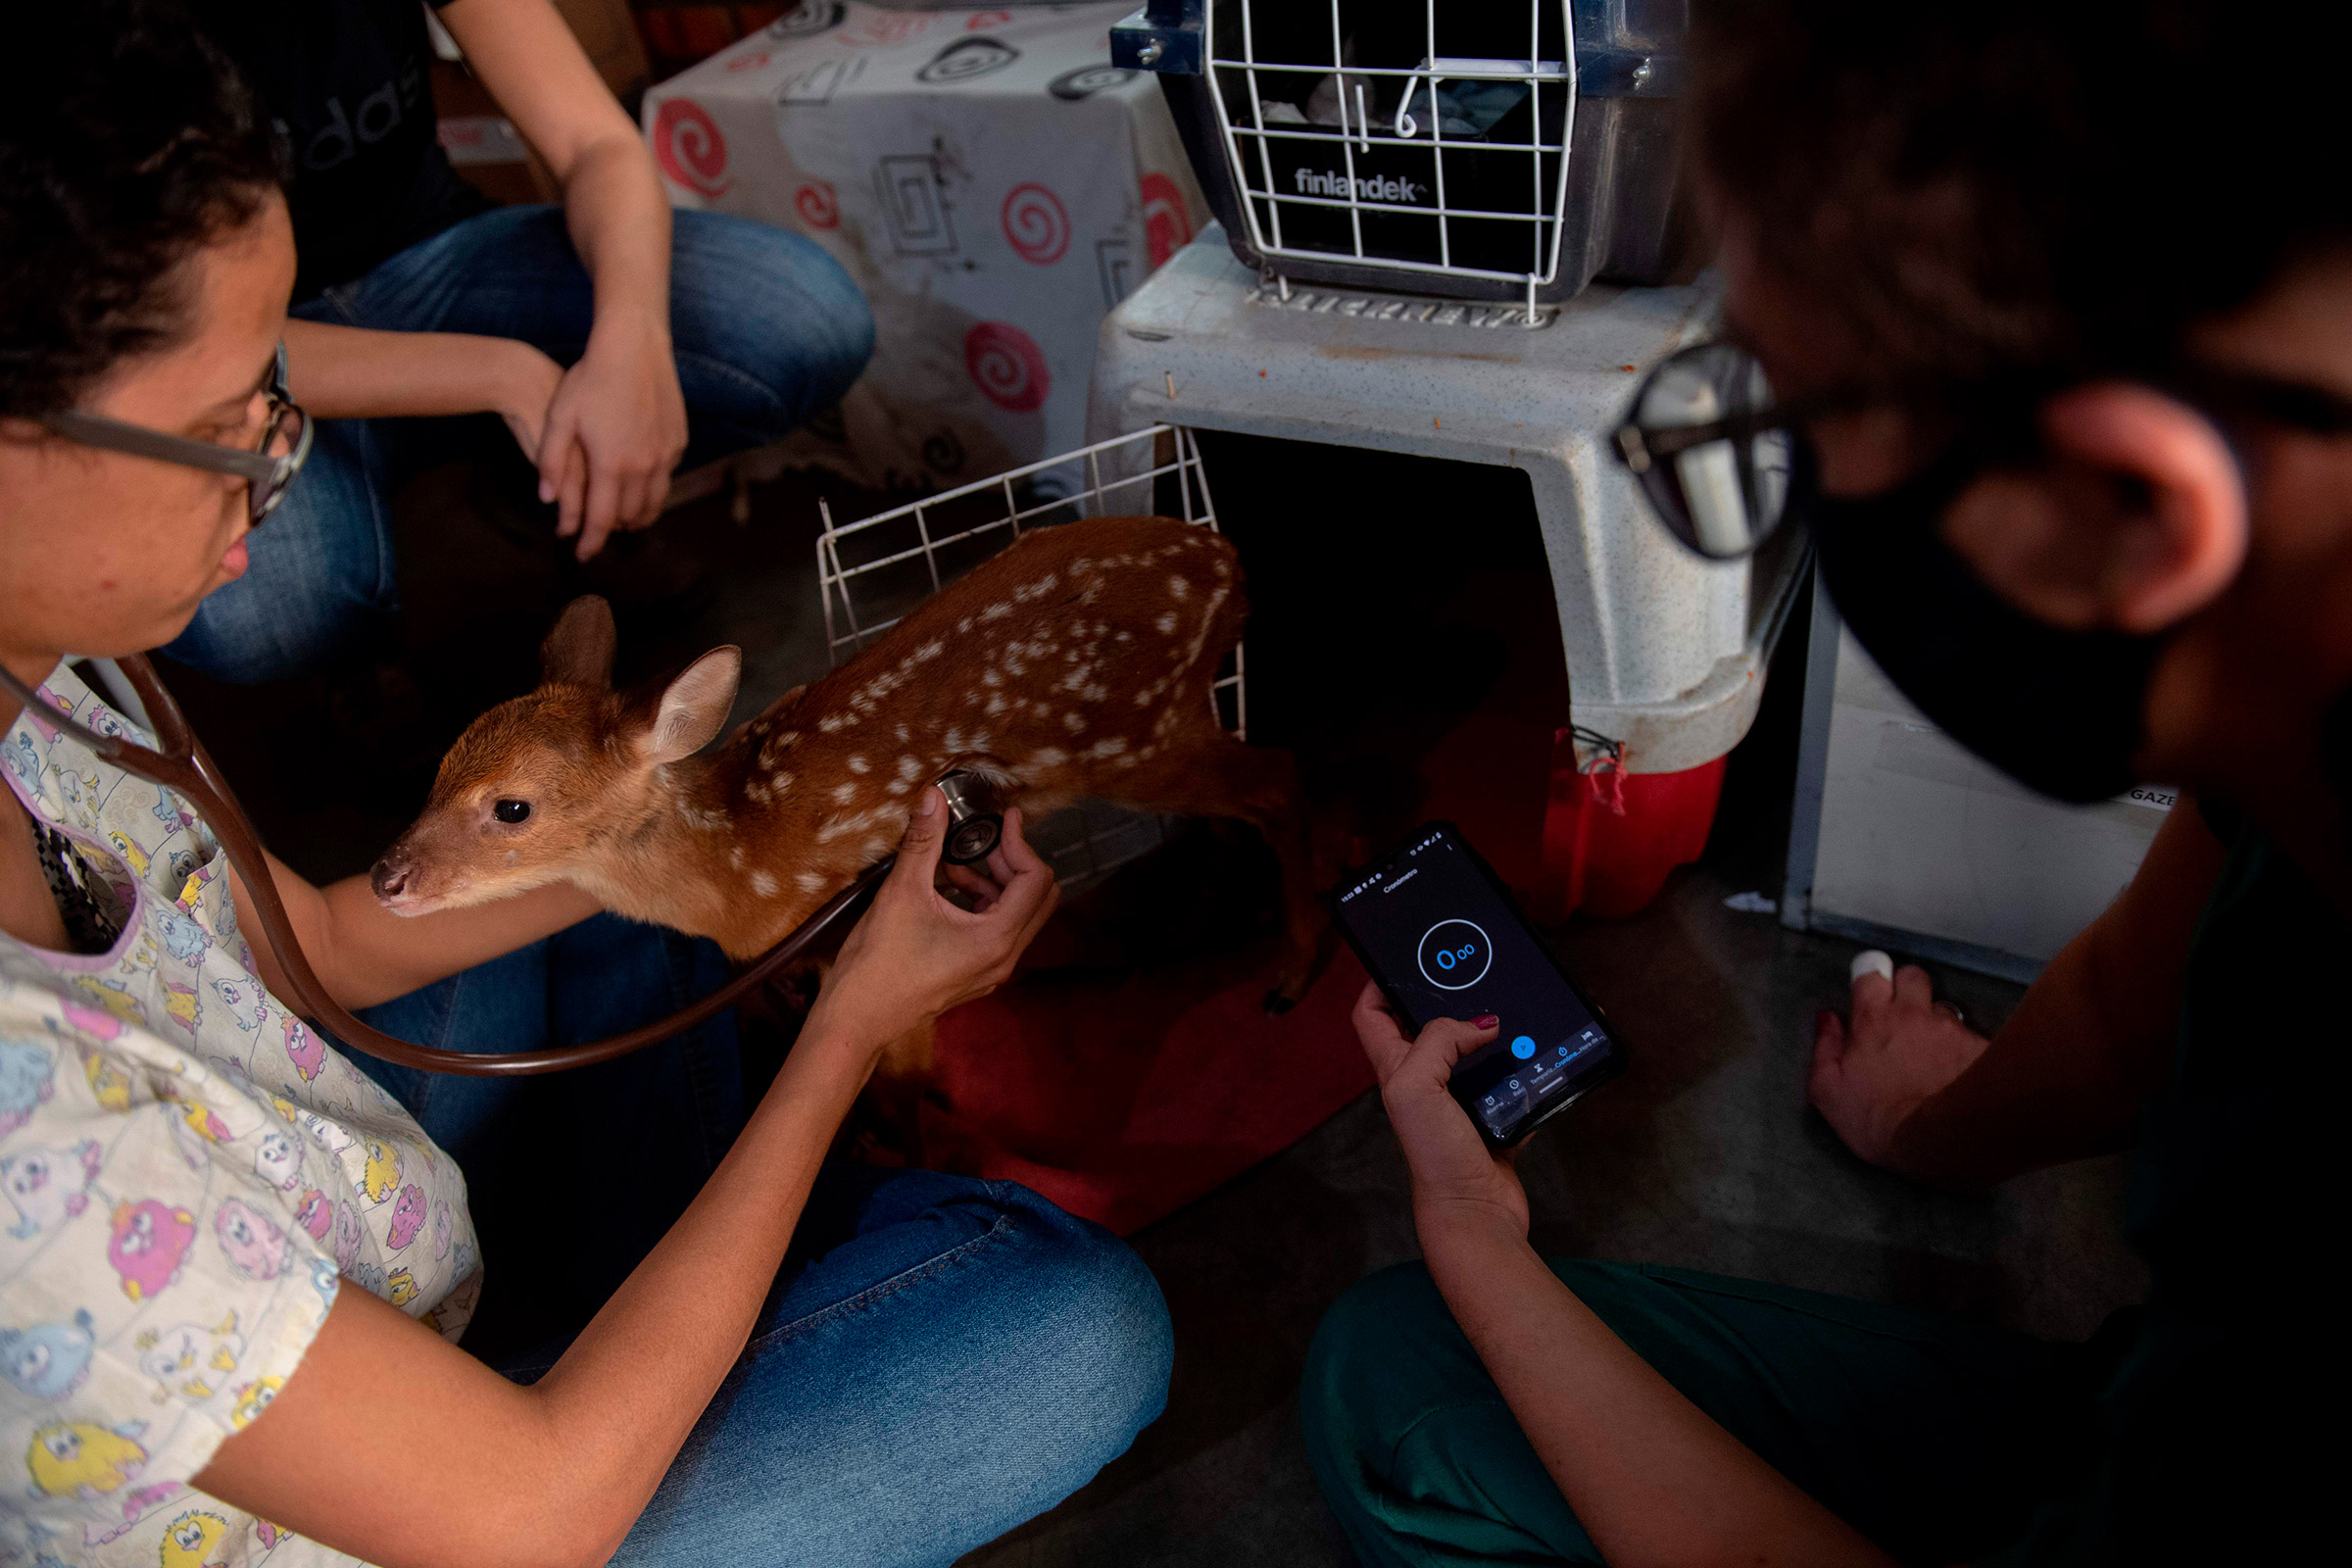 A deer receives care on Sept. 17.